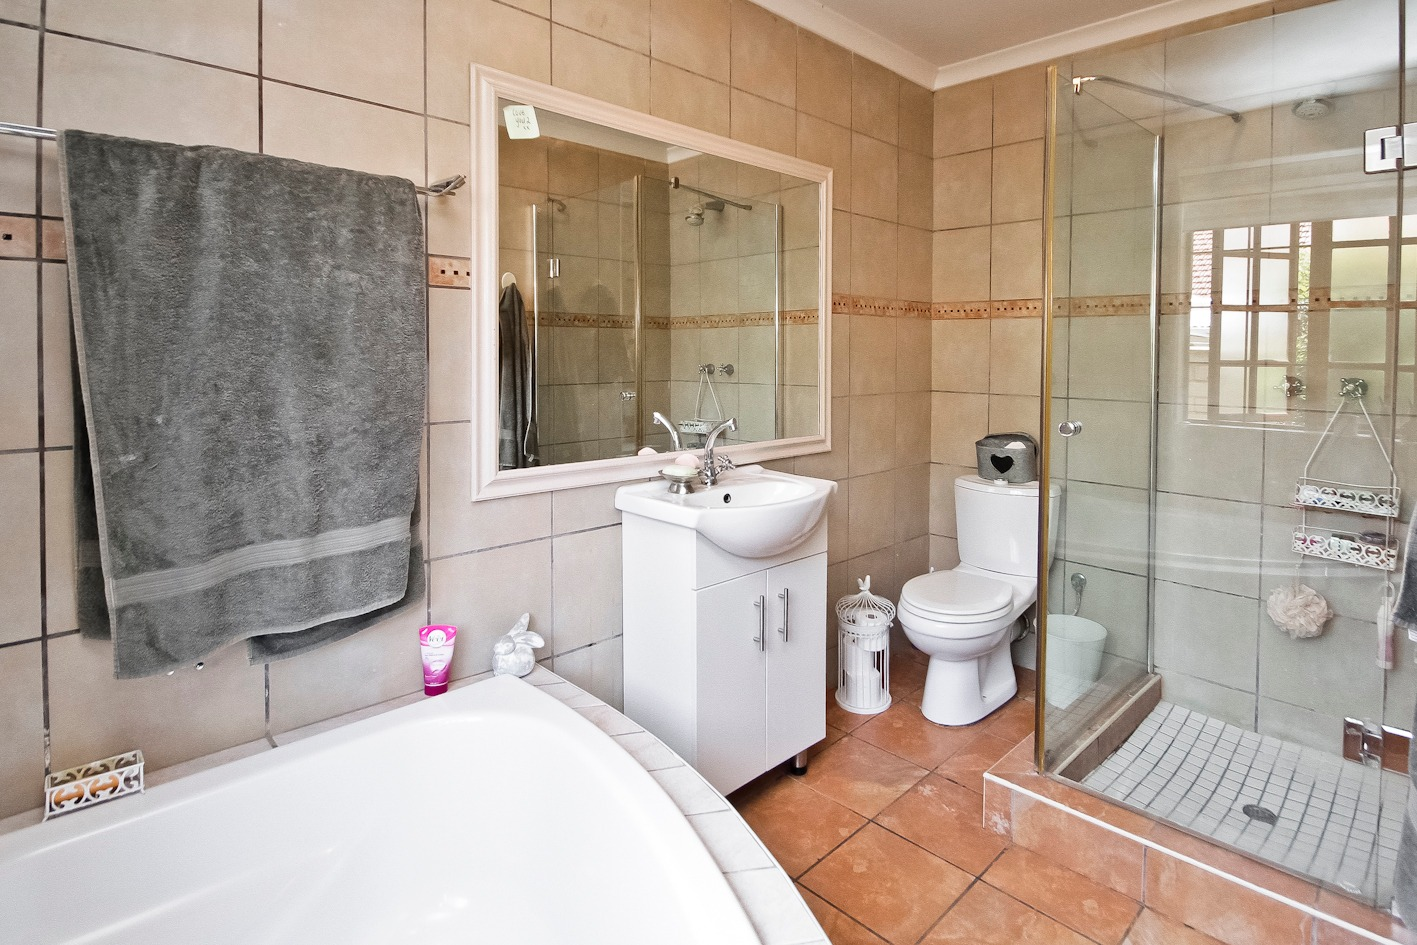 4 Bedroom House For Sale in Thornhill Estate